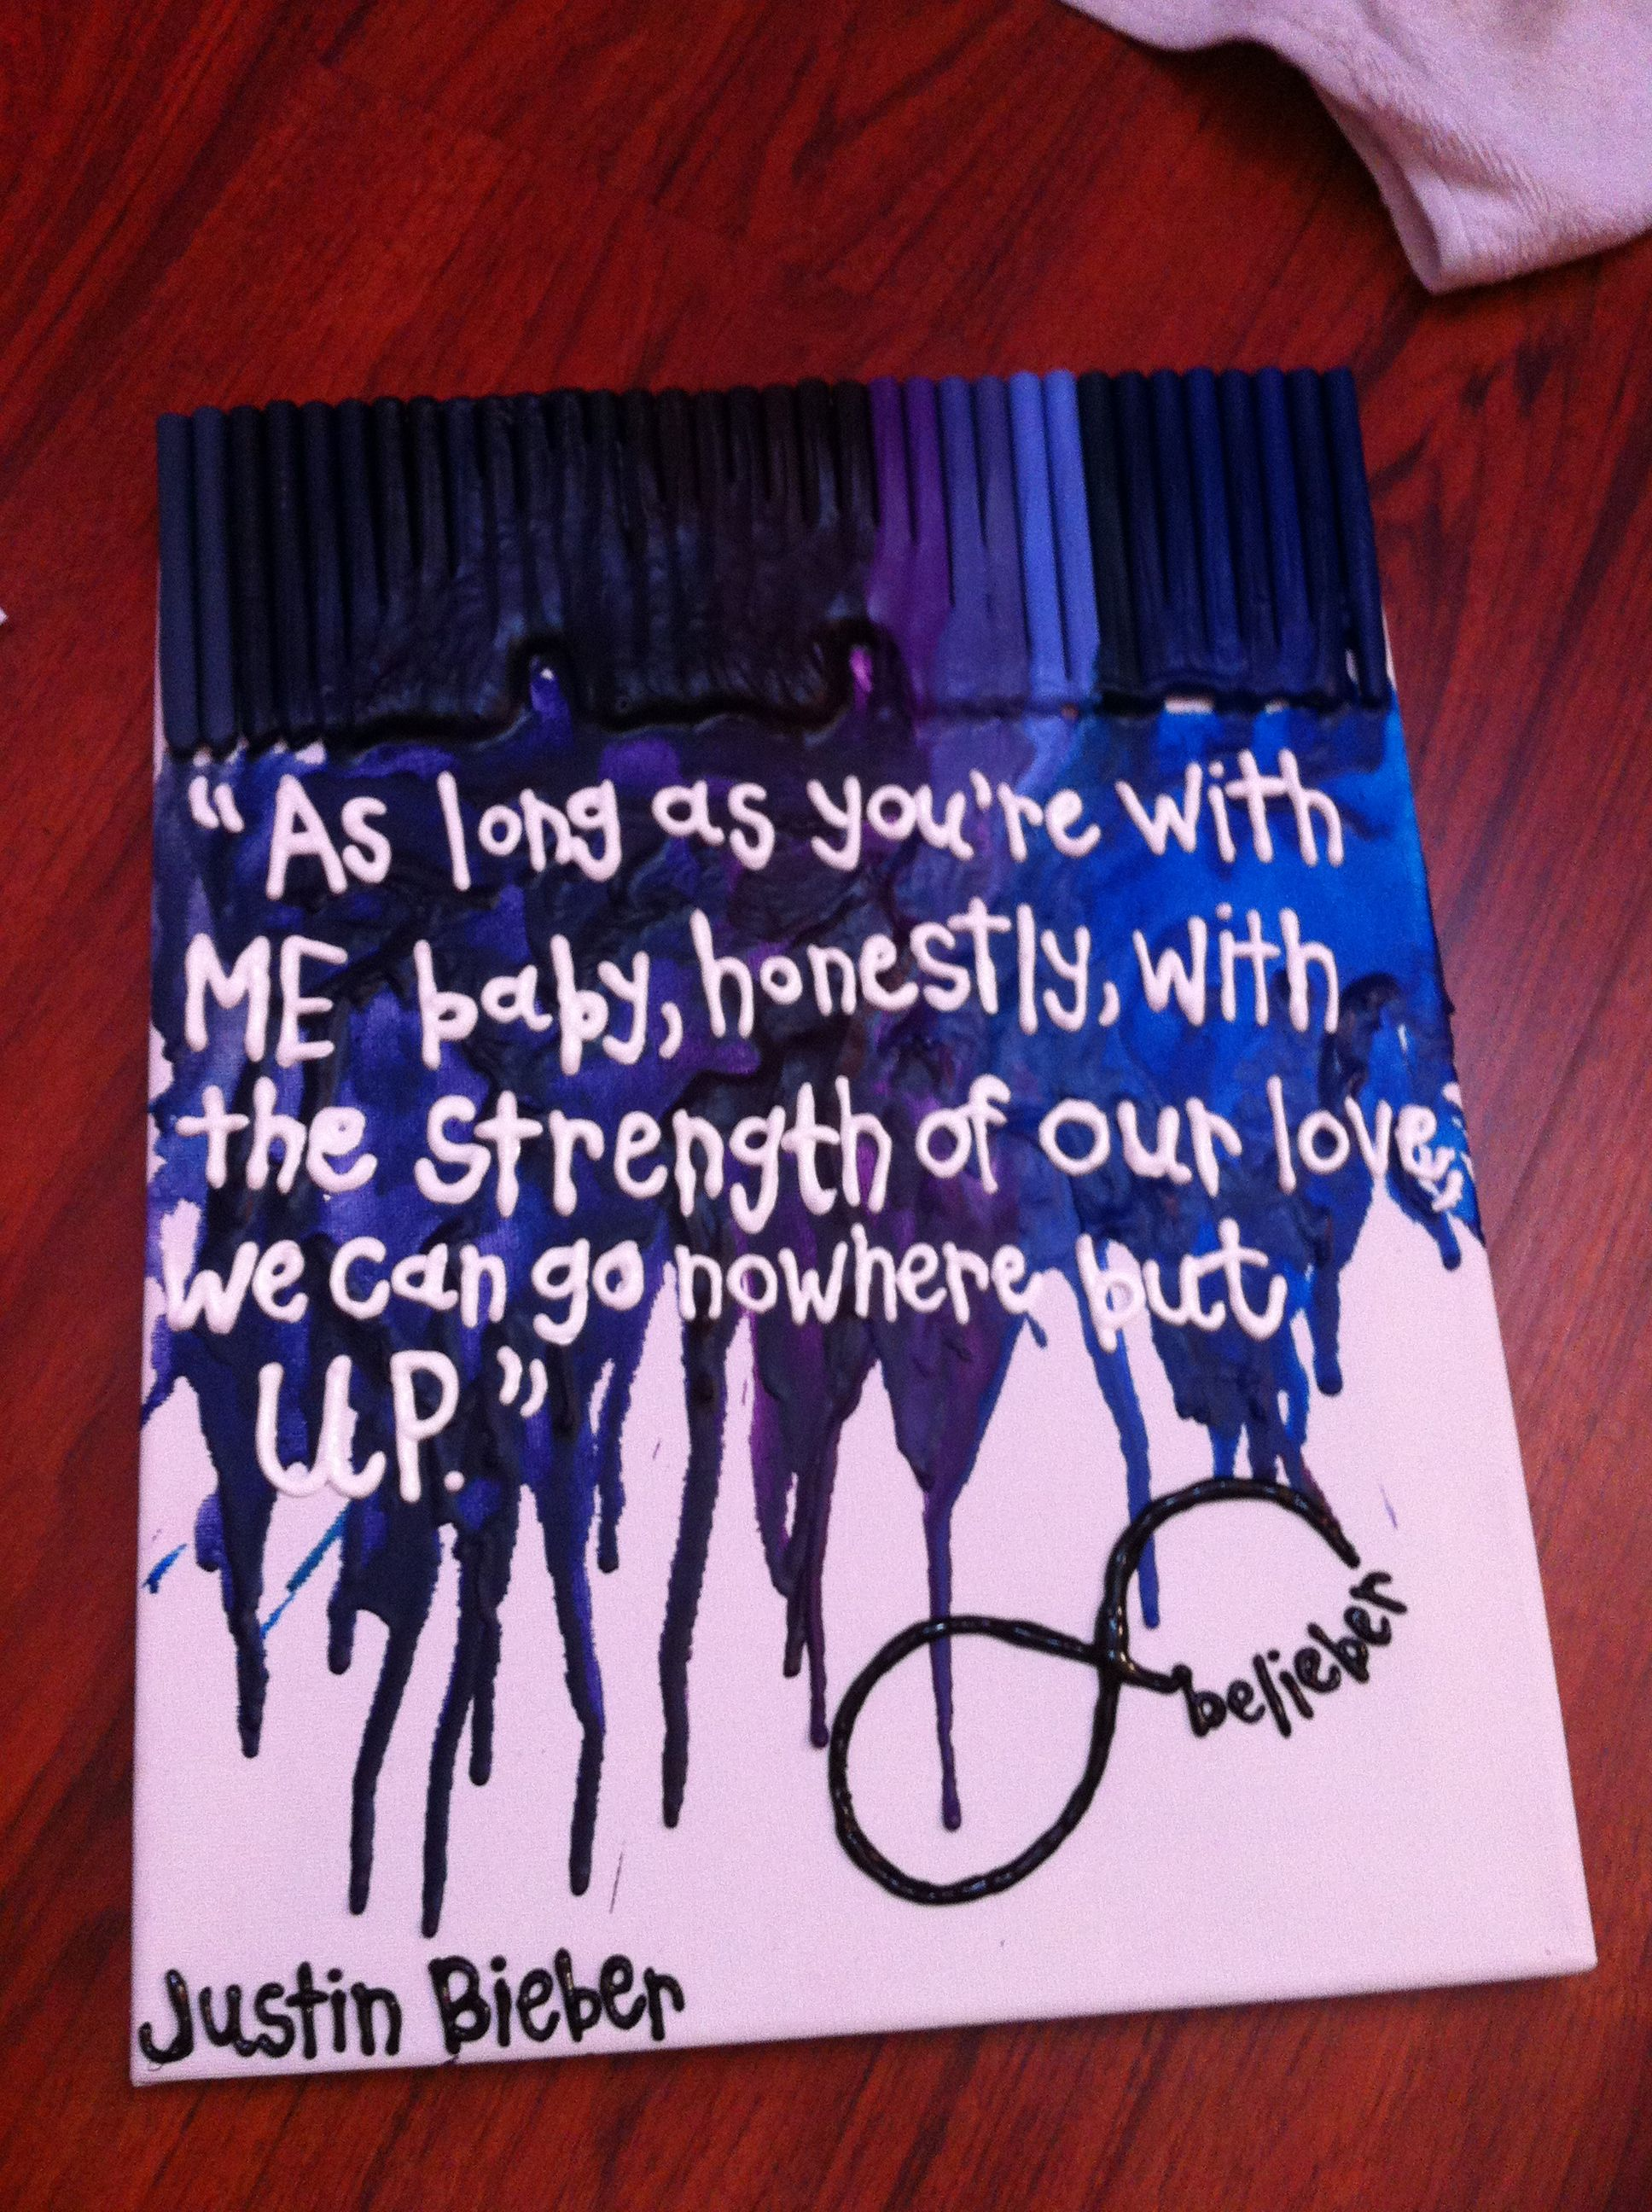 Justin bieber tumblr lyrics live quotes - Justin Bieber Lyric Canvas U Smile Maybe Or Even Do A Be Alright One